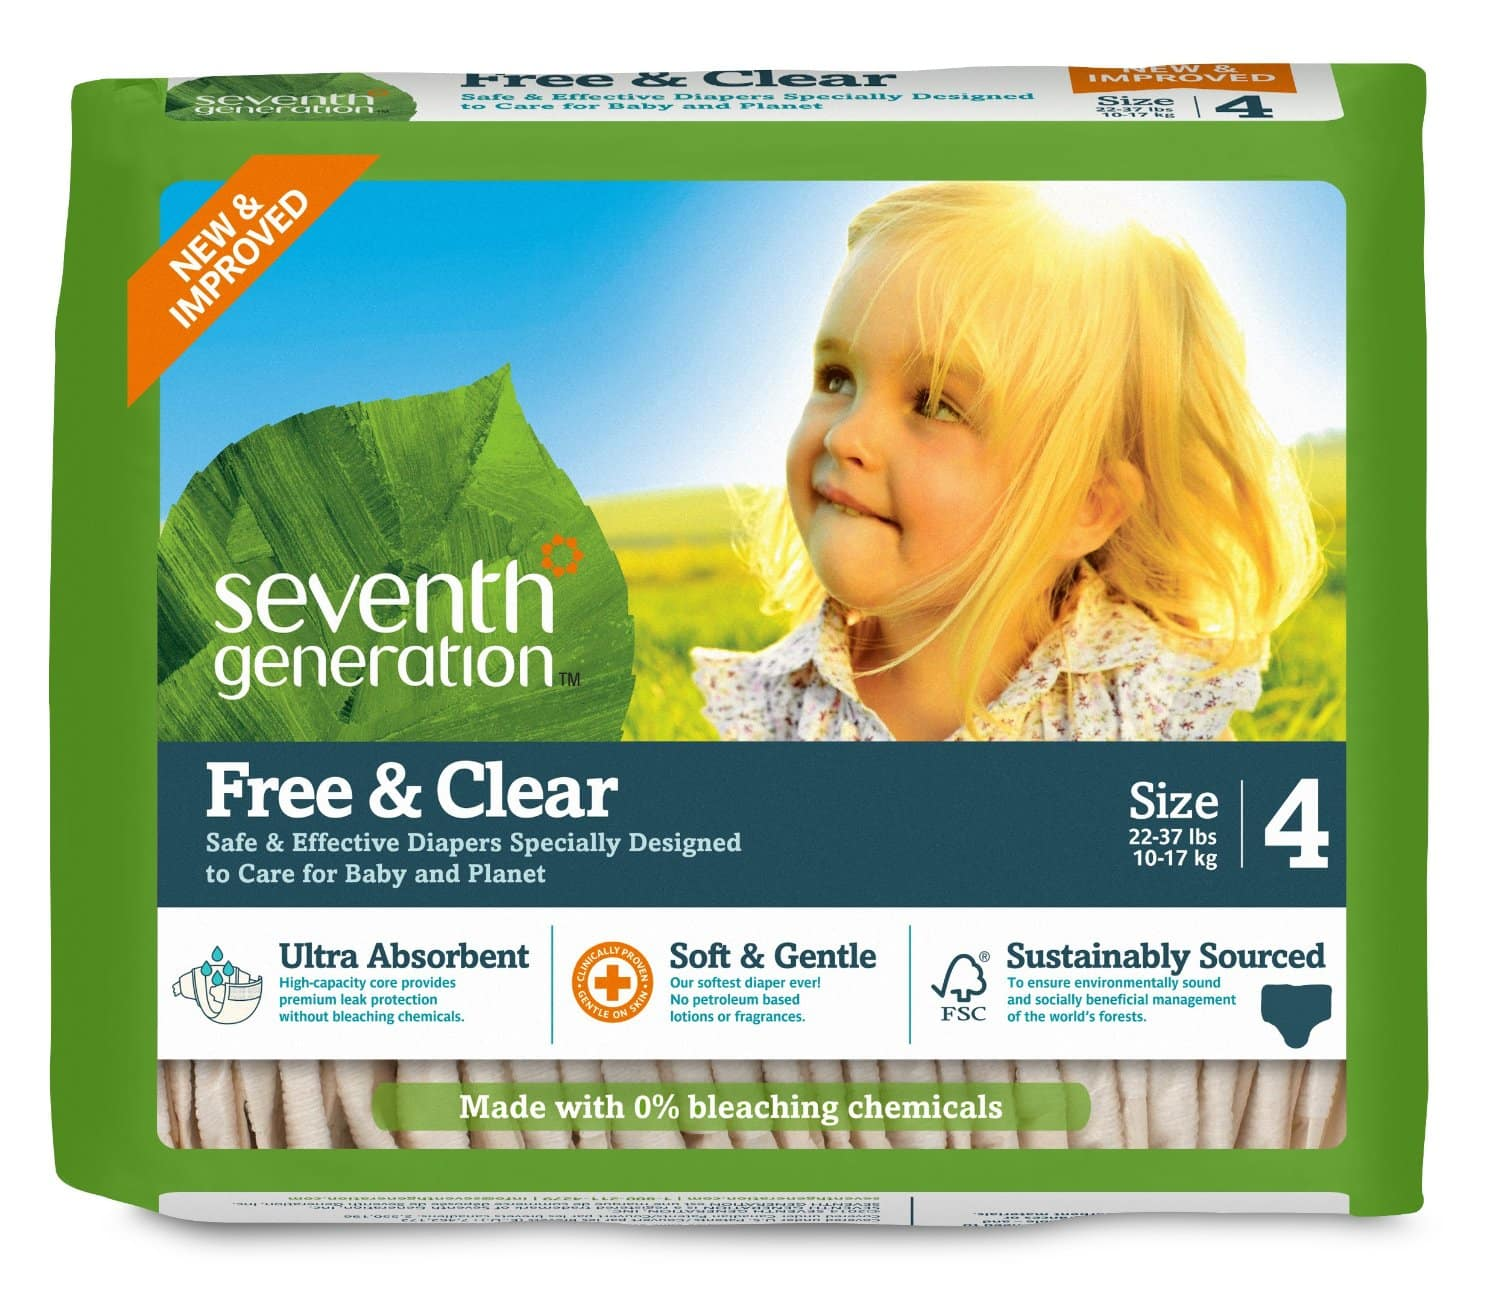 Amazon Family Members: 135-Ct Seventh Gen. Diapers (Size 4)  $14.40 & More + Free S&H